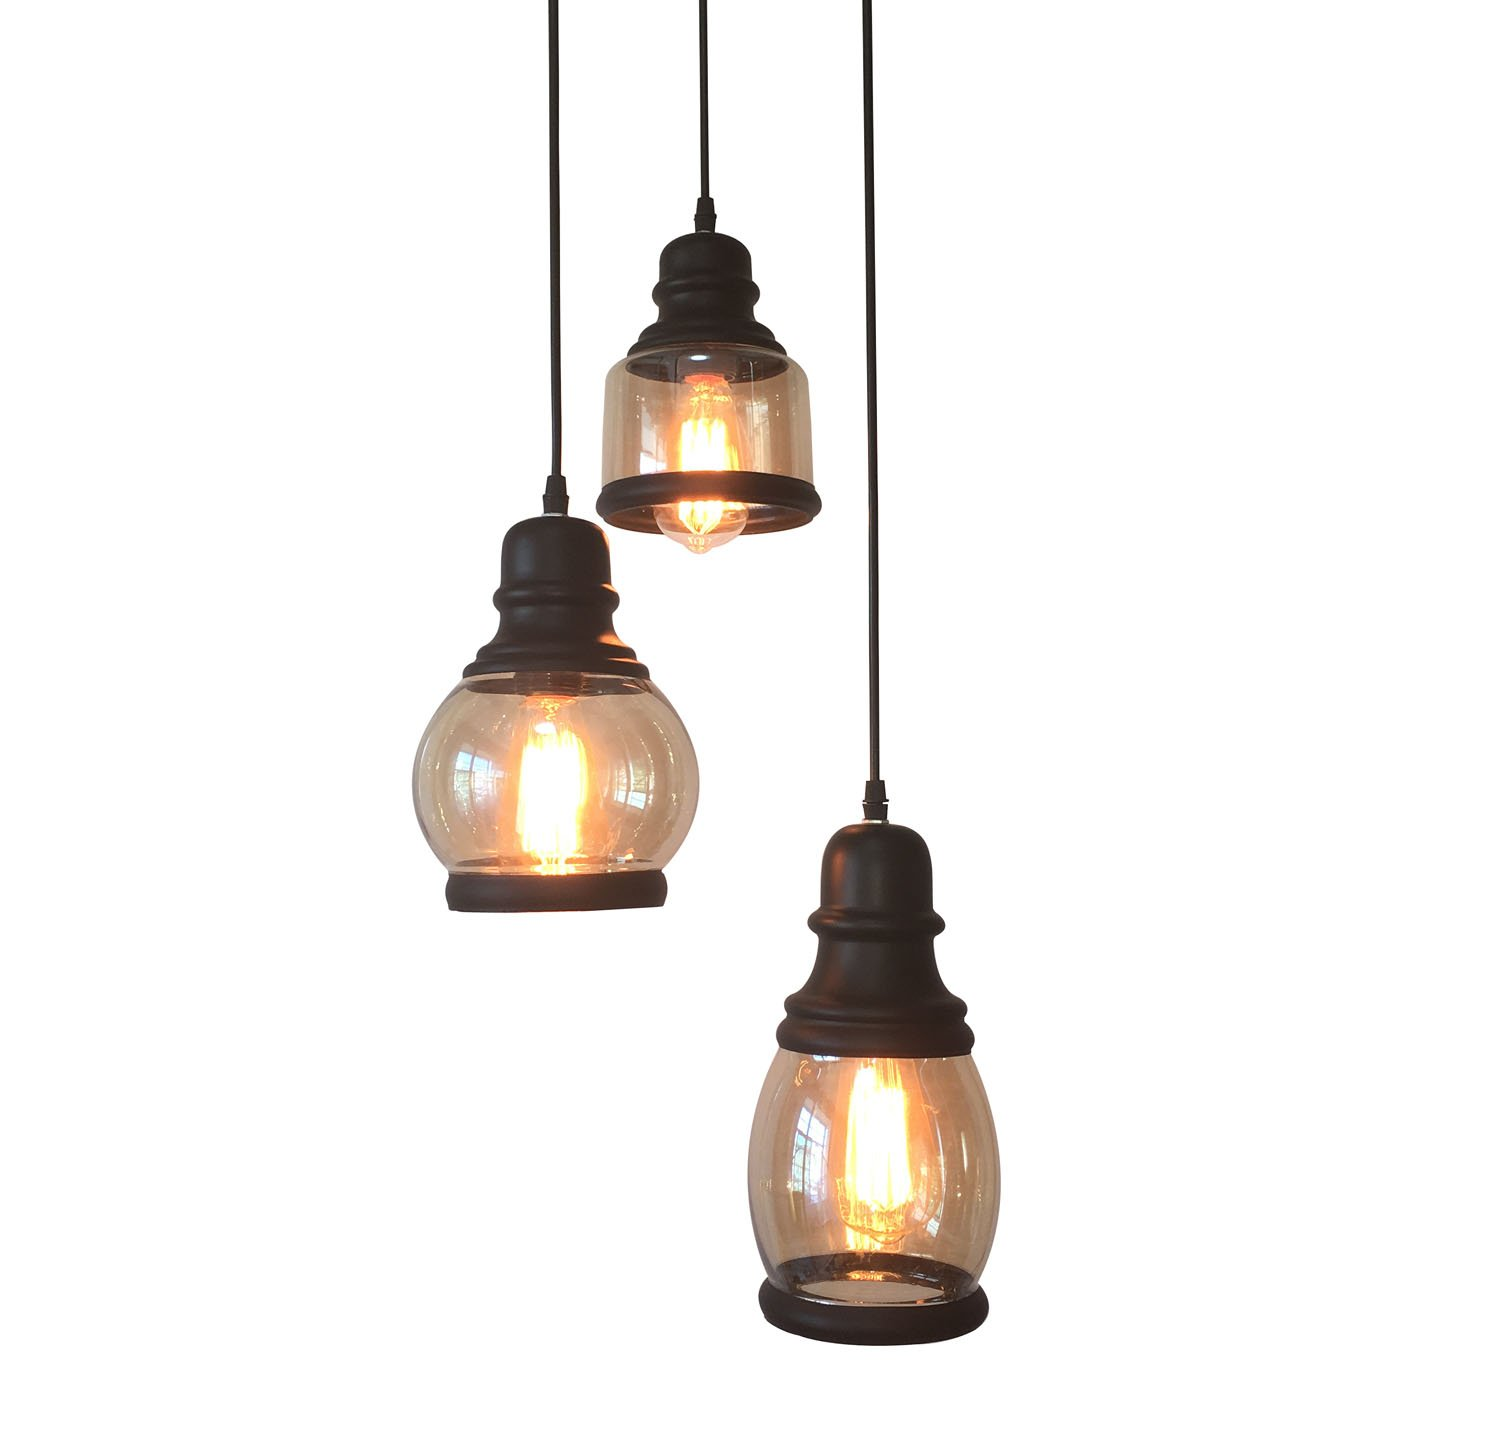 HuitengTec Vintage Industrial Metal and Amber Glass Shade Jar Hanging Pendant Light Three Light Fixture for Kitchen and Stairwell Lighting